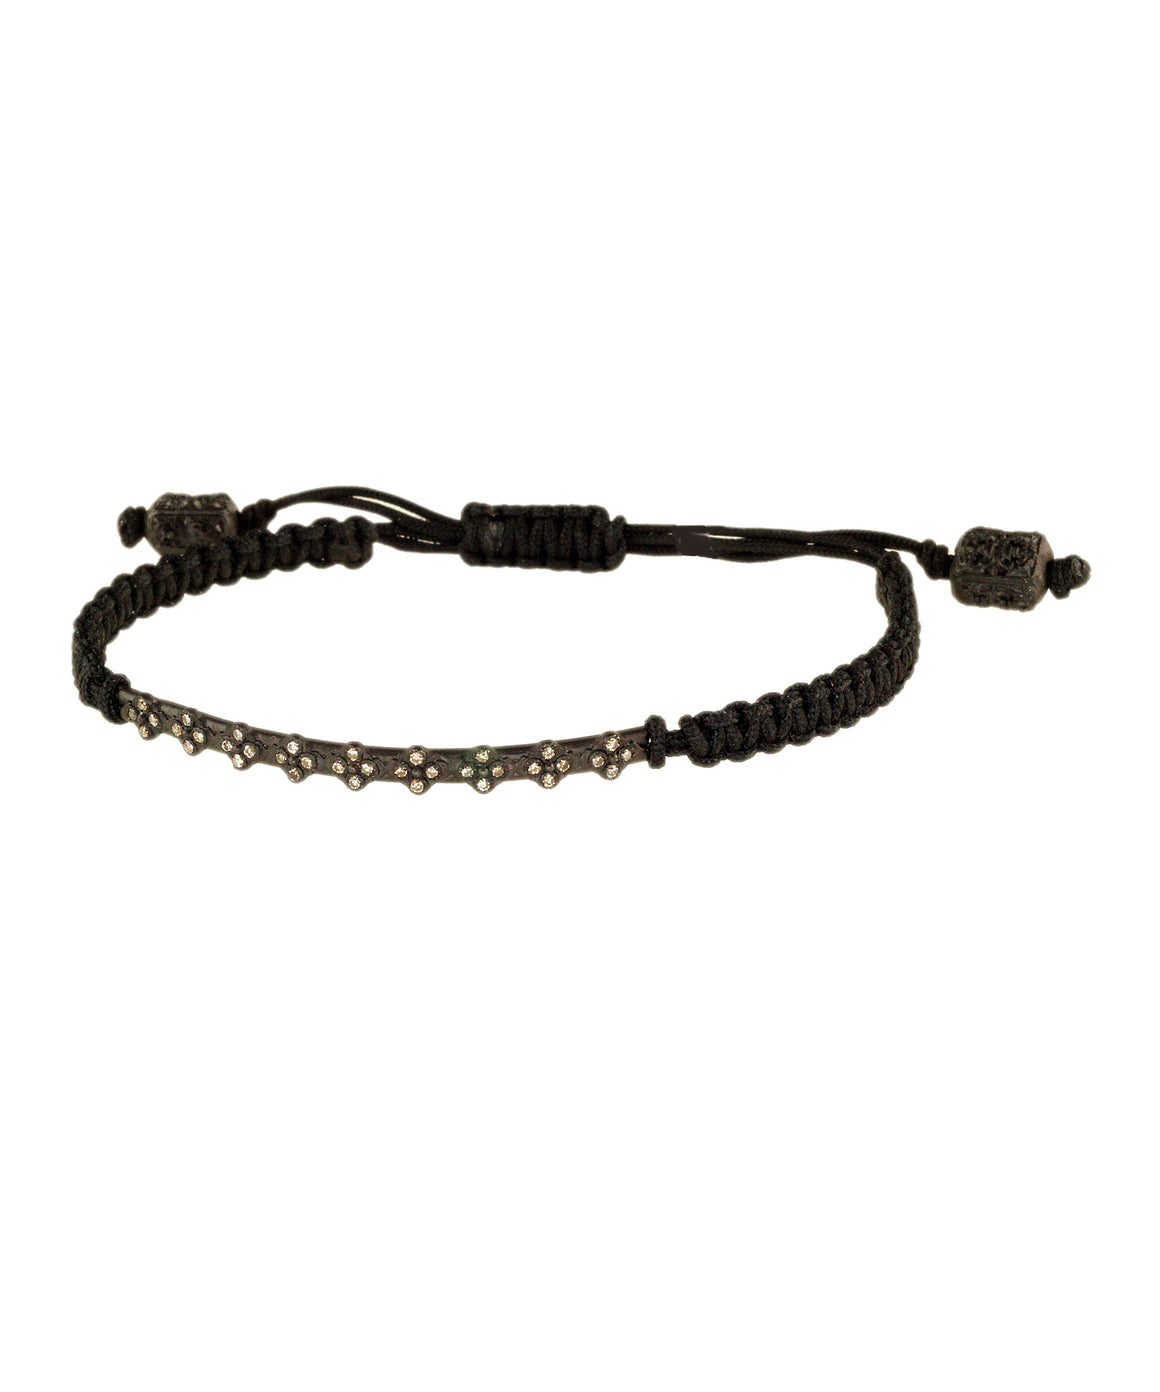 This casual little bracelet is woven of black cord. The sterling silver bar at the front is set with champagne diamonds. The length adjusts with the two textured pull bars at the end,